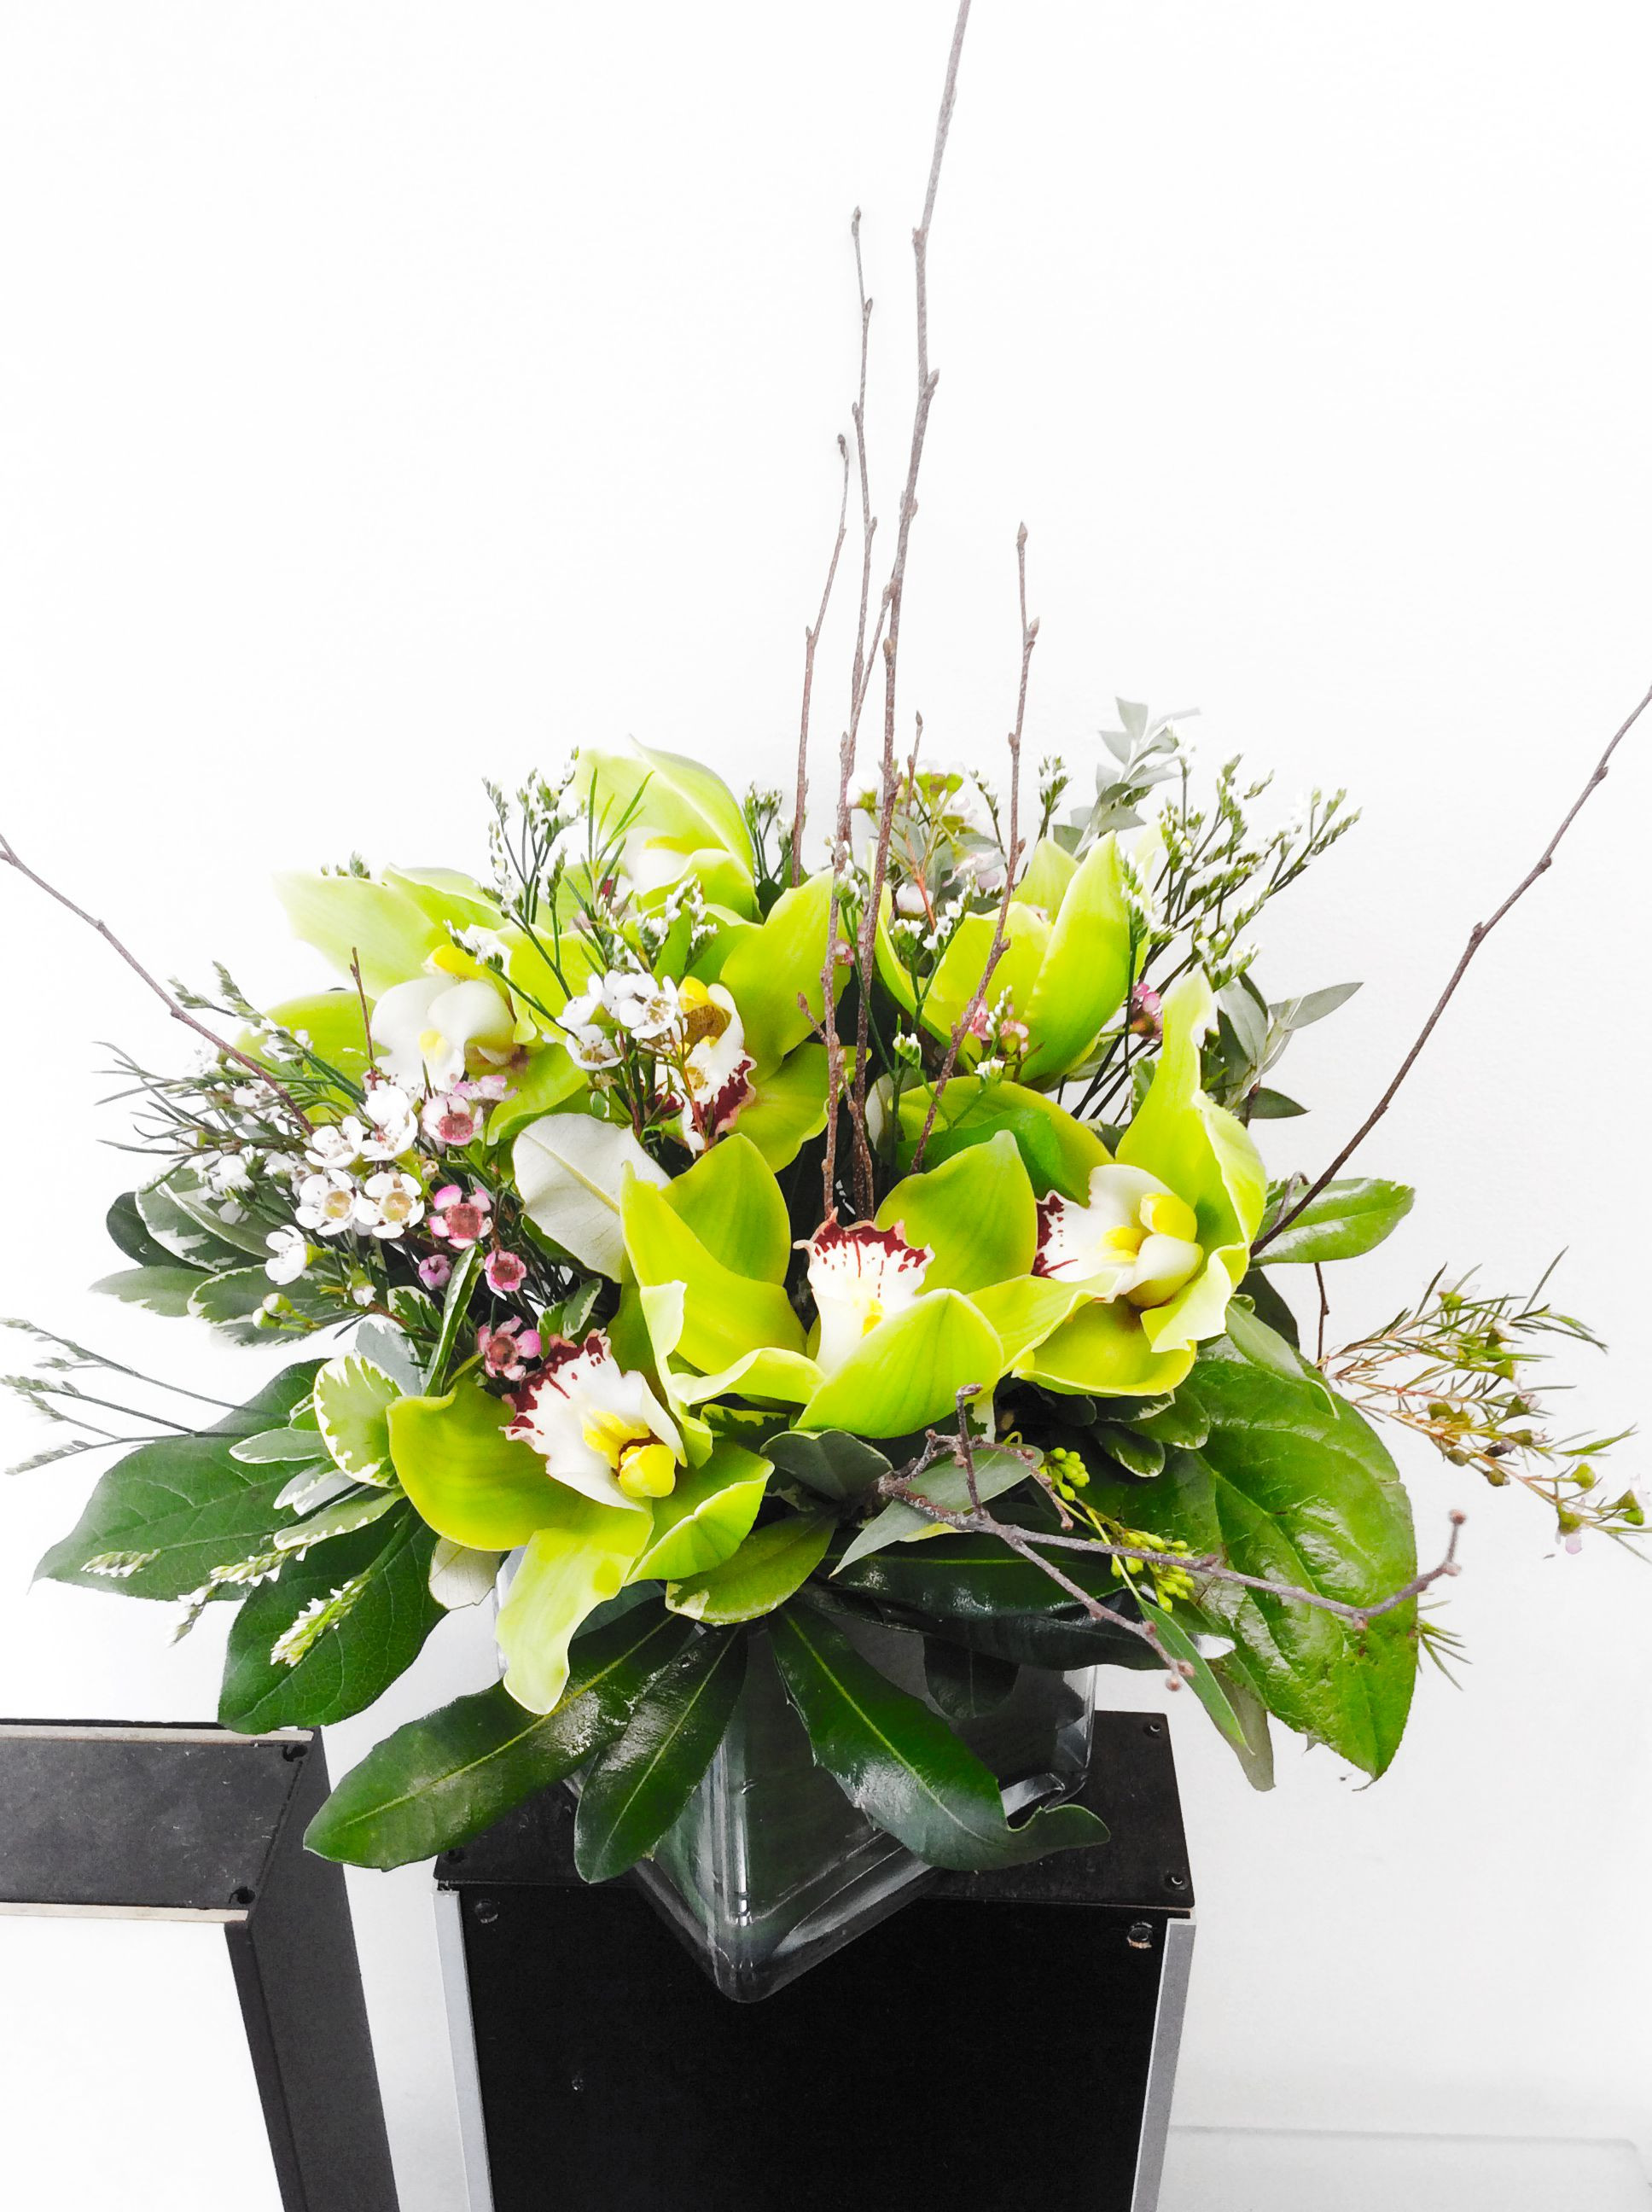 square vase with flowers of a custom floral arrangement in a square vase designed by flowers throughout a custom floral arrangement in a square vase designed by flowers naturally in